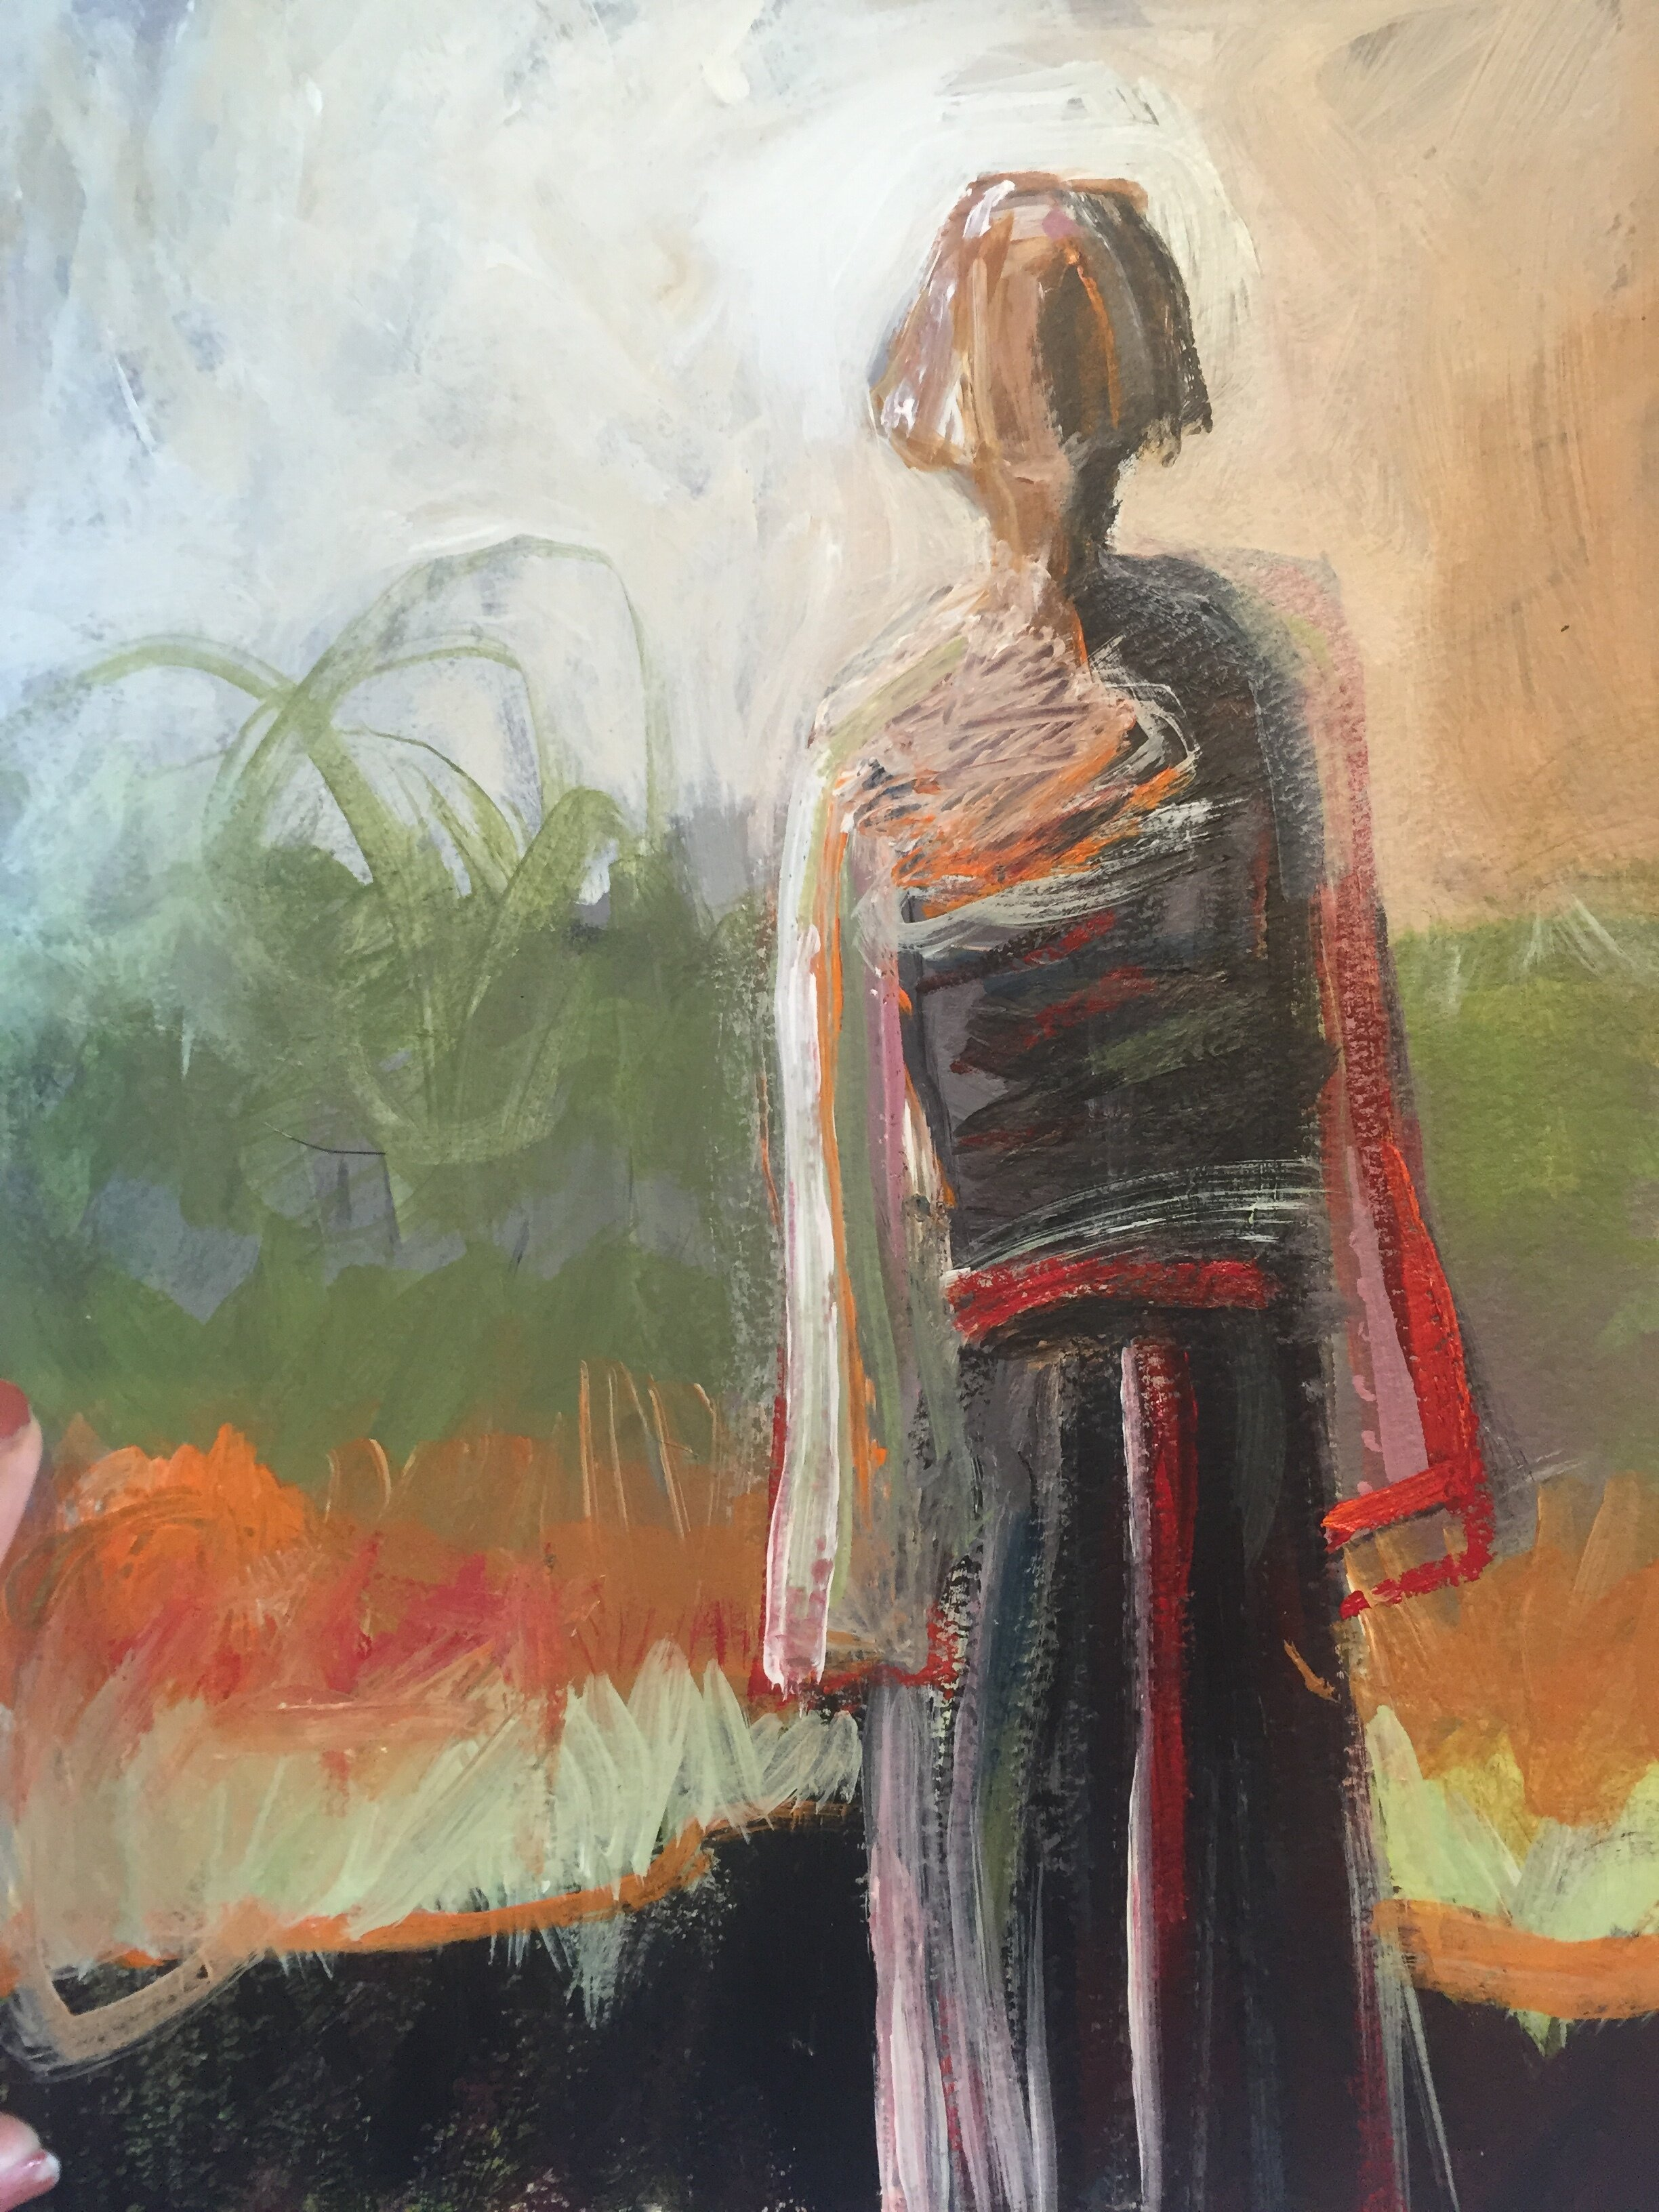 Missing You_mixed-media-on-unstretched-canvas_11 x 14on-20-x-16-inch-mat